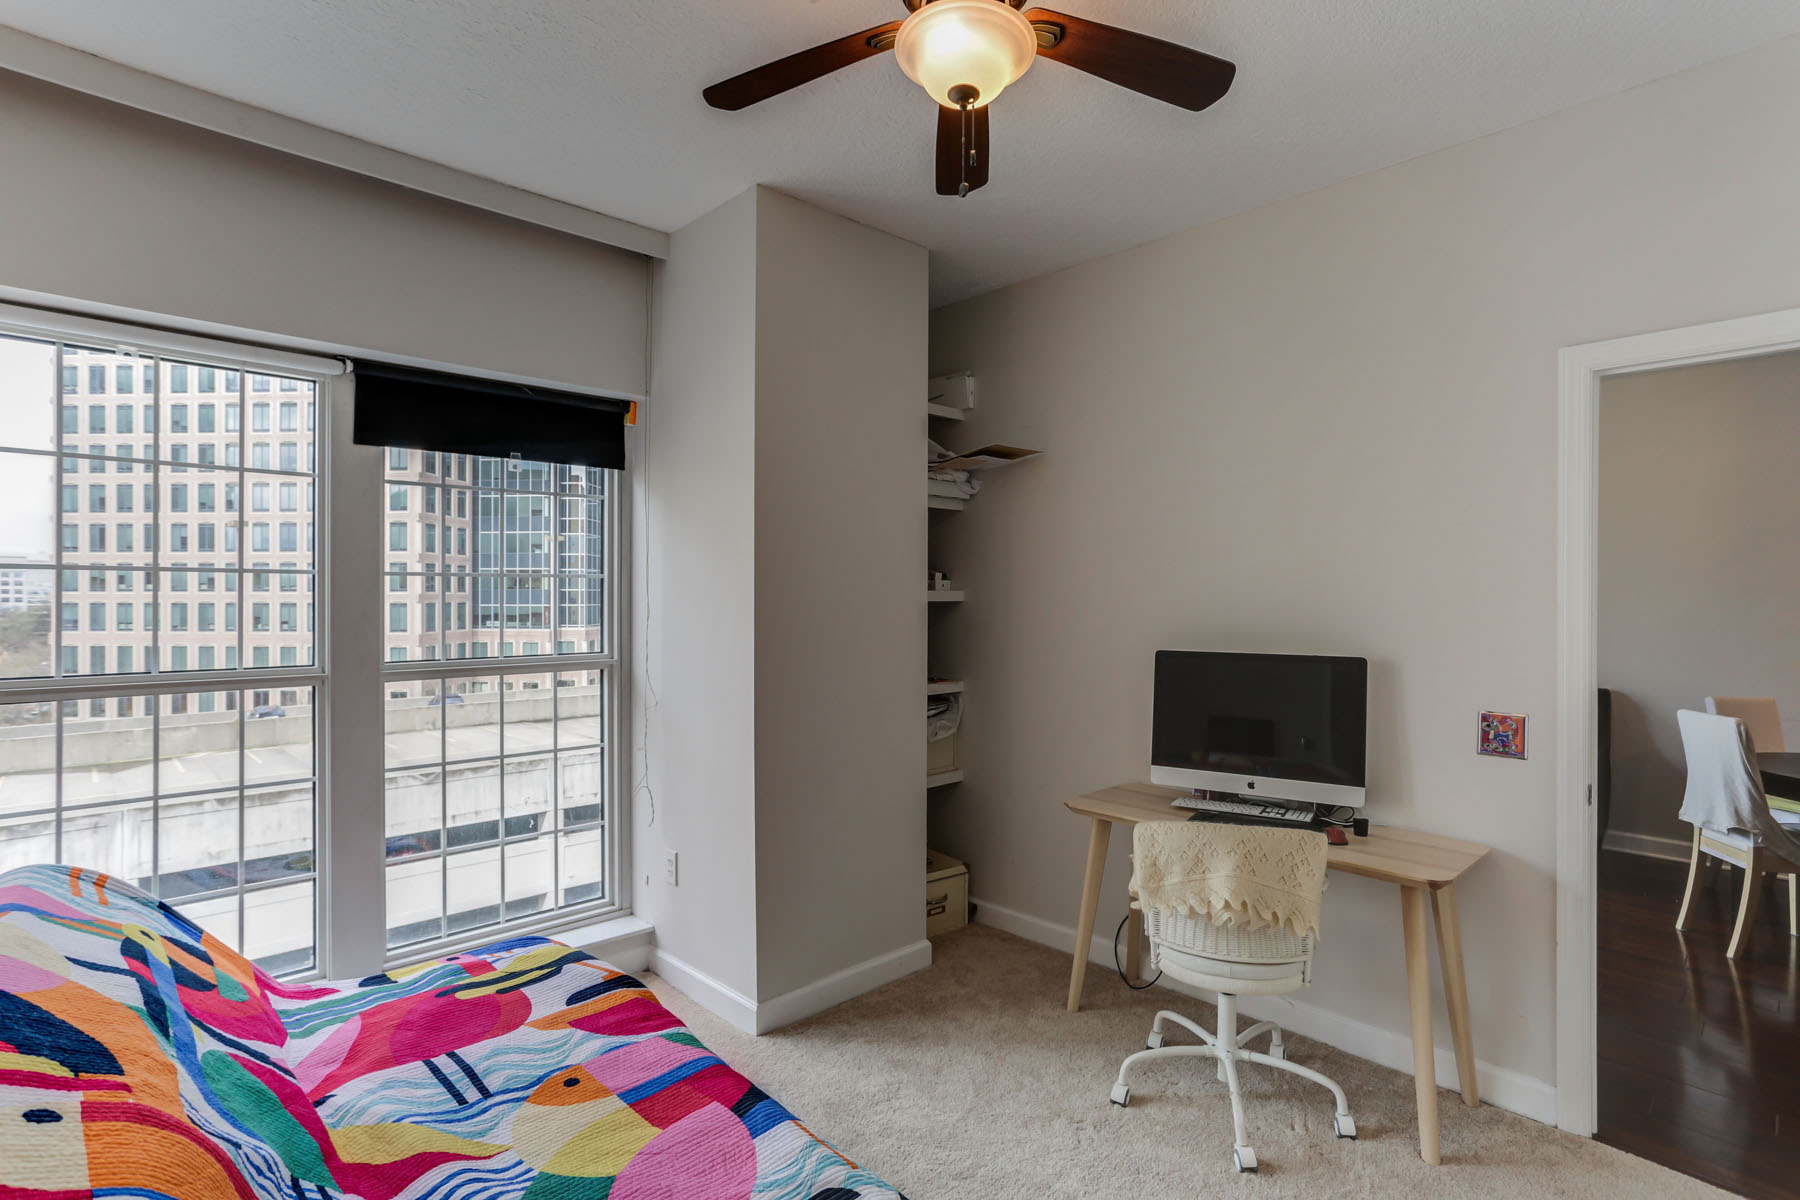 Additional photo for property listing at Incredible Condo Smack Dab in Midtown! 195 14th St 904 Atlanta, ジョージア 30309 アメリカ合衆国